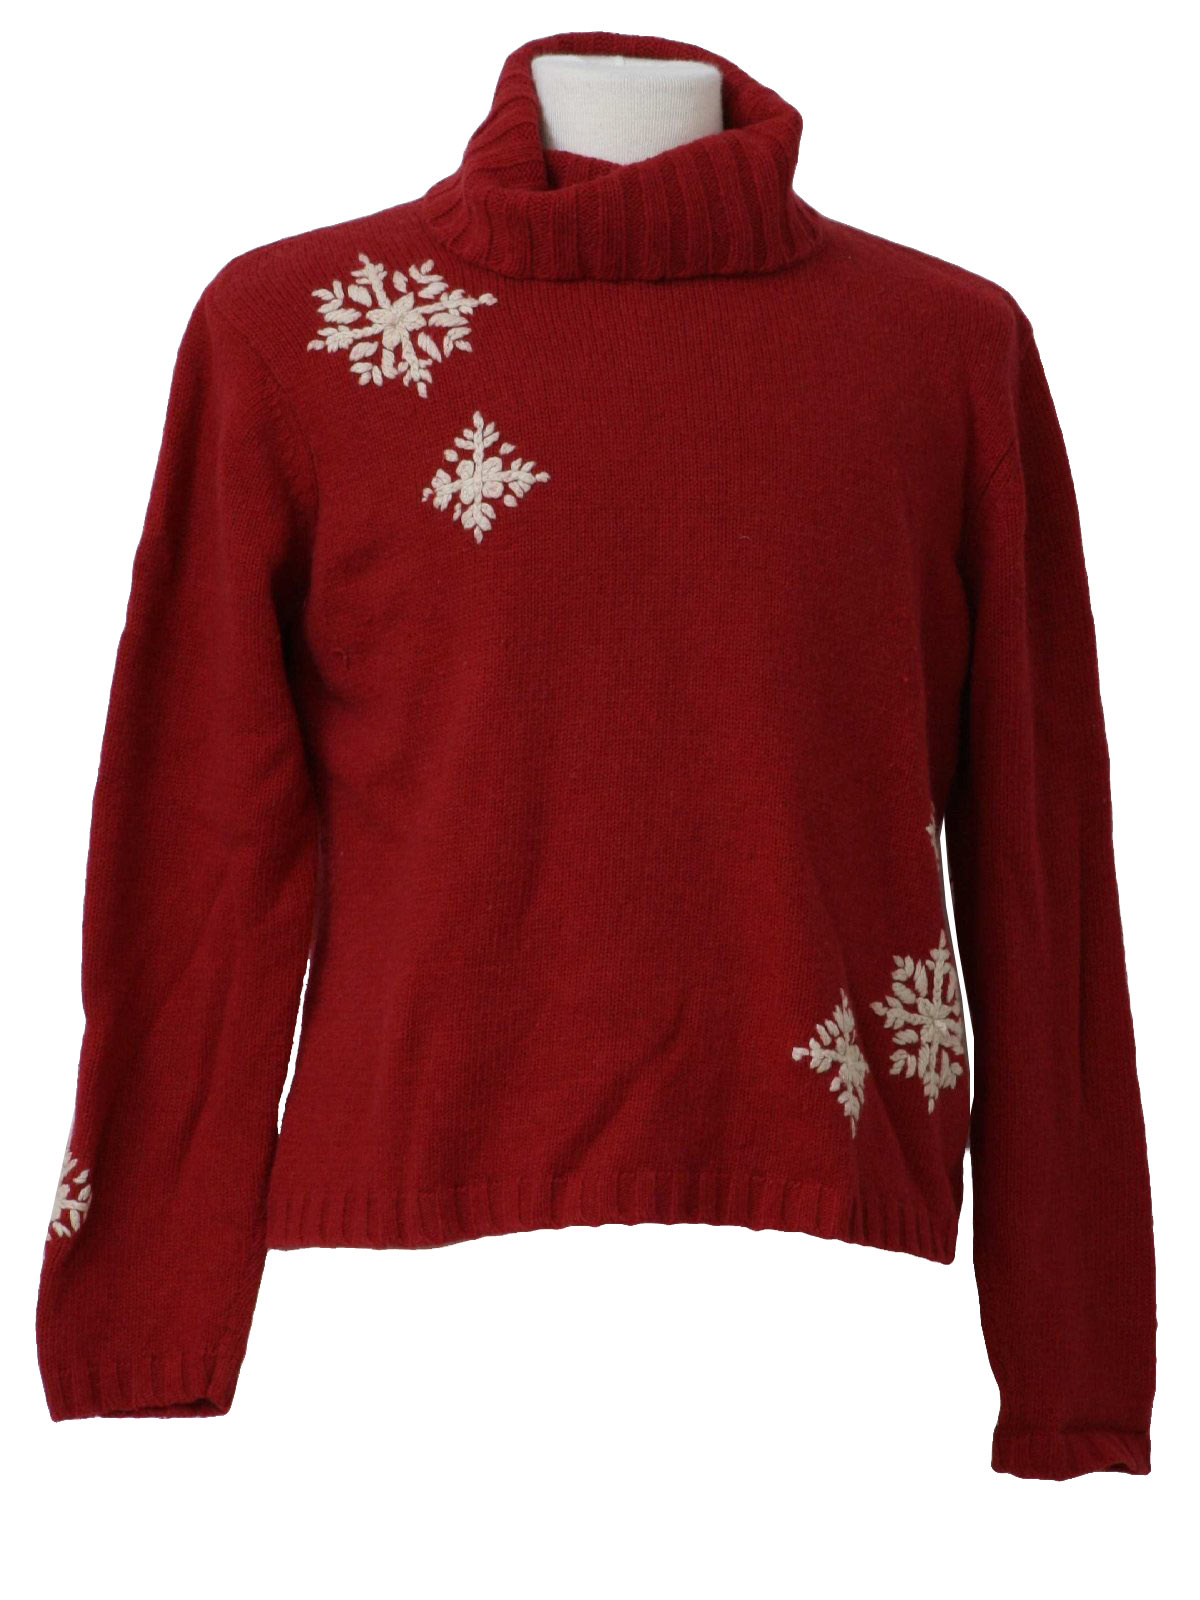 e43aba04 Sonoma Womens Ugly Christmas Sweater 28.00 SALE $12.00 In stock. Item No.  199858